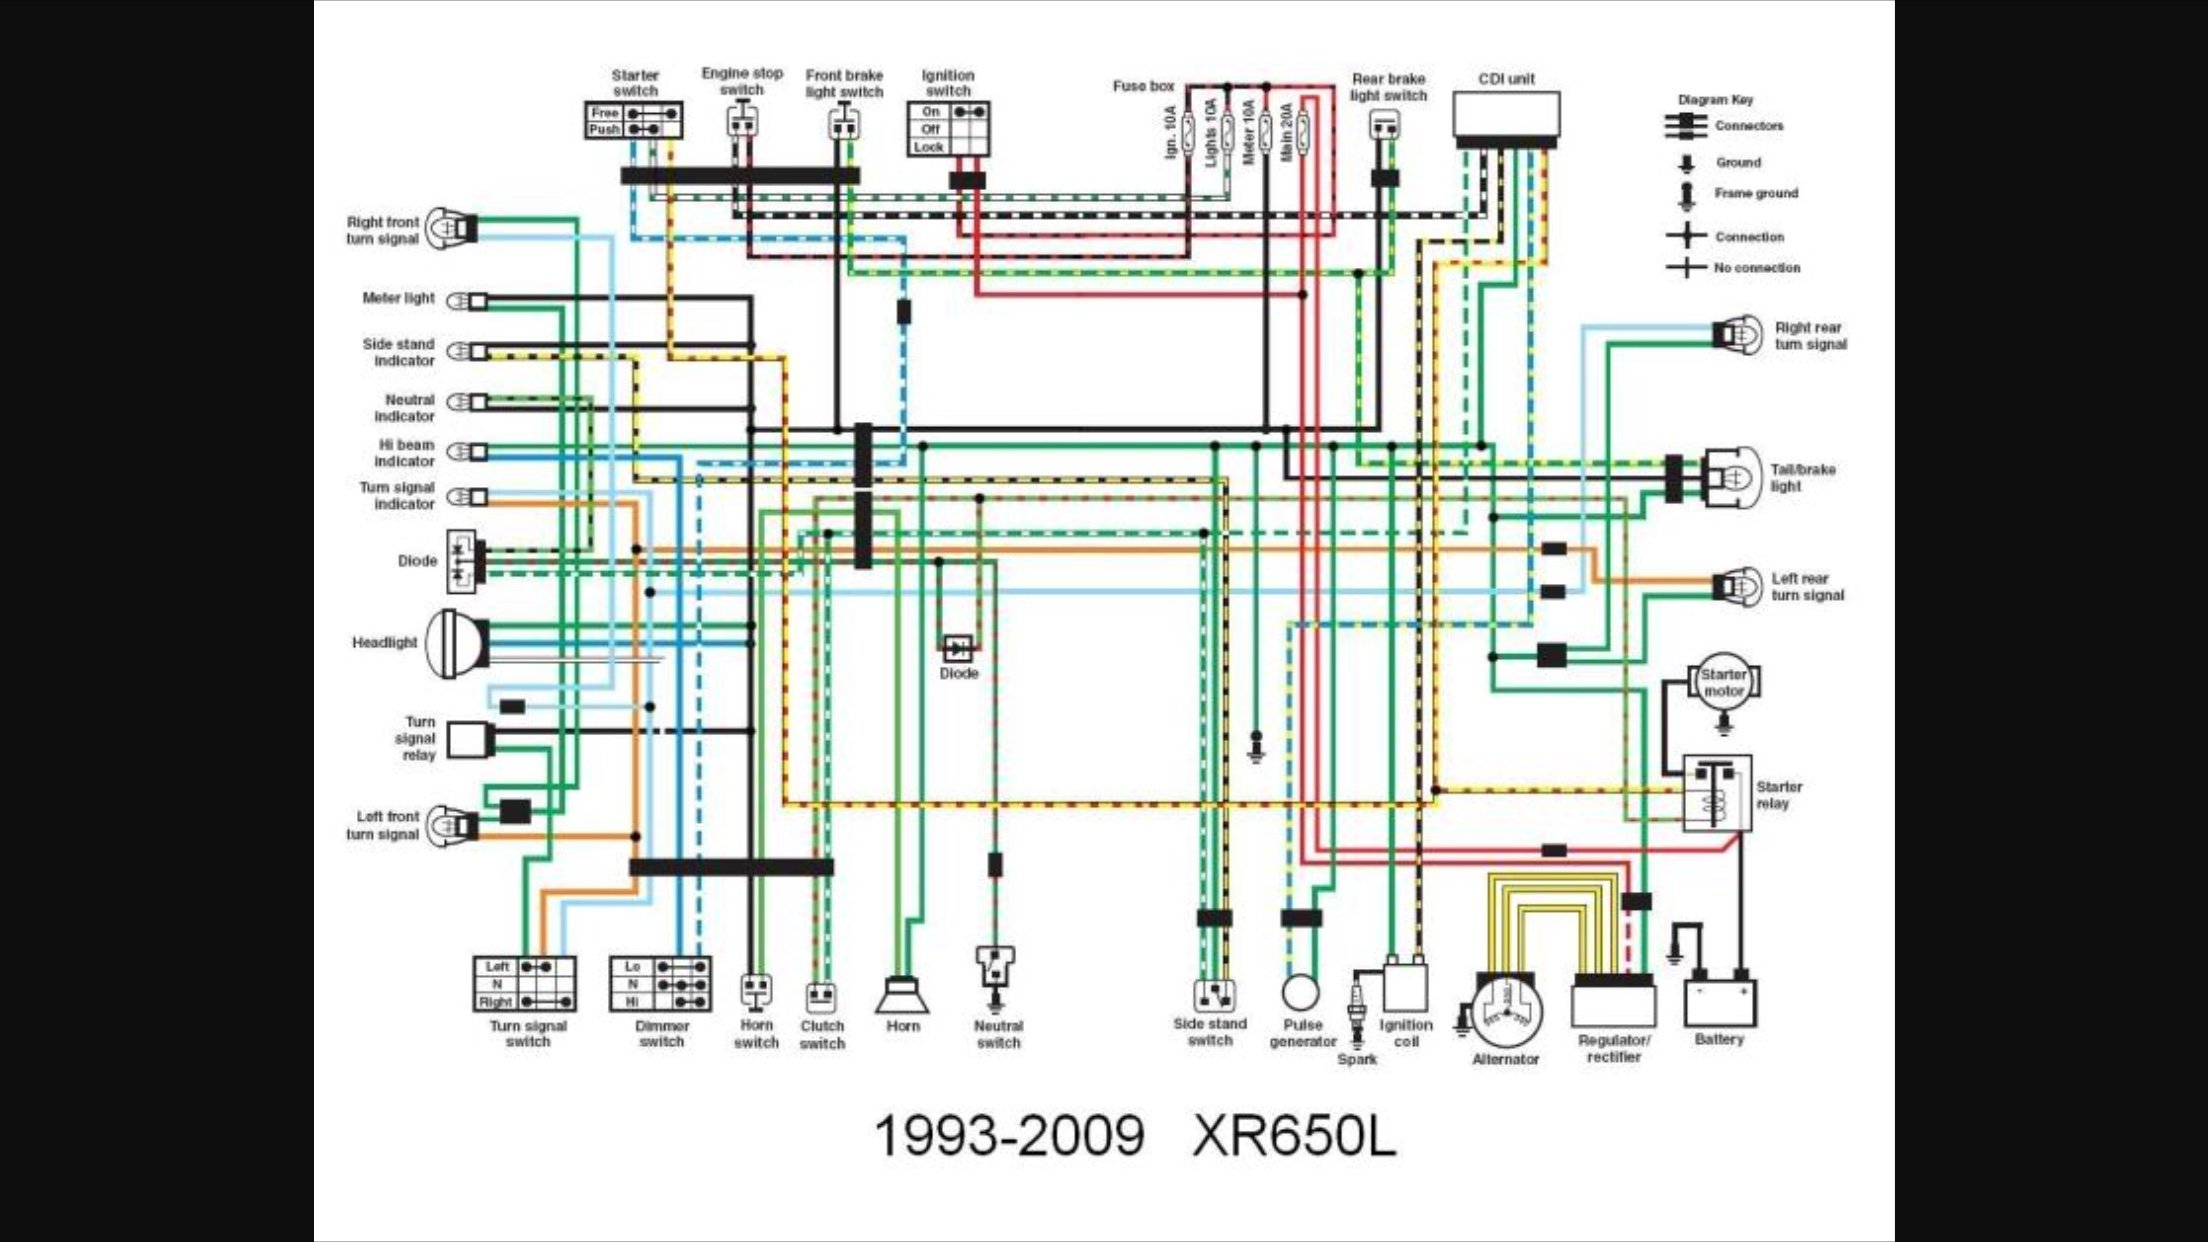 Redrawn Xr650l Wiring Diagram  L